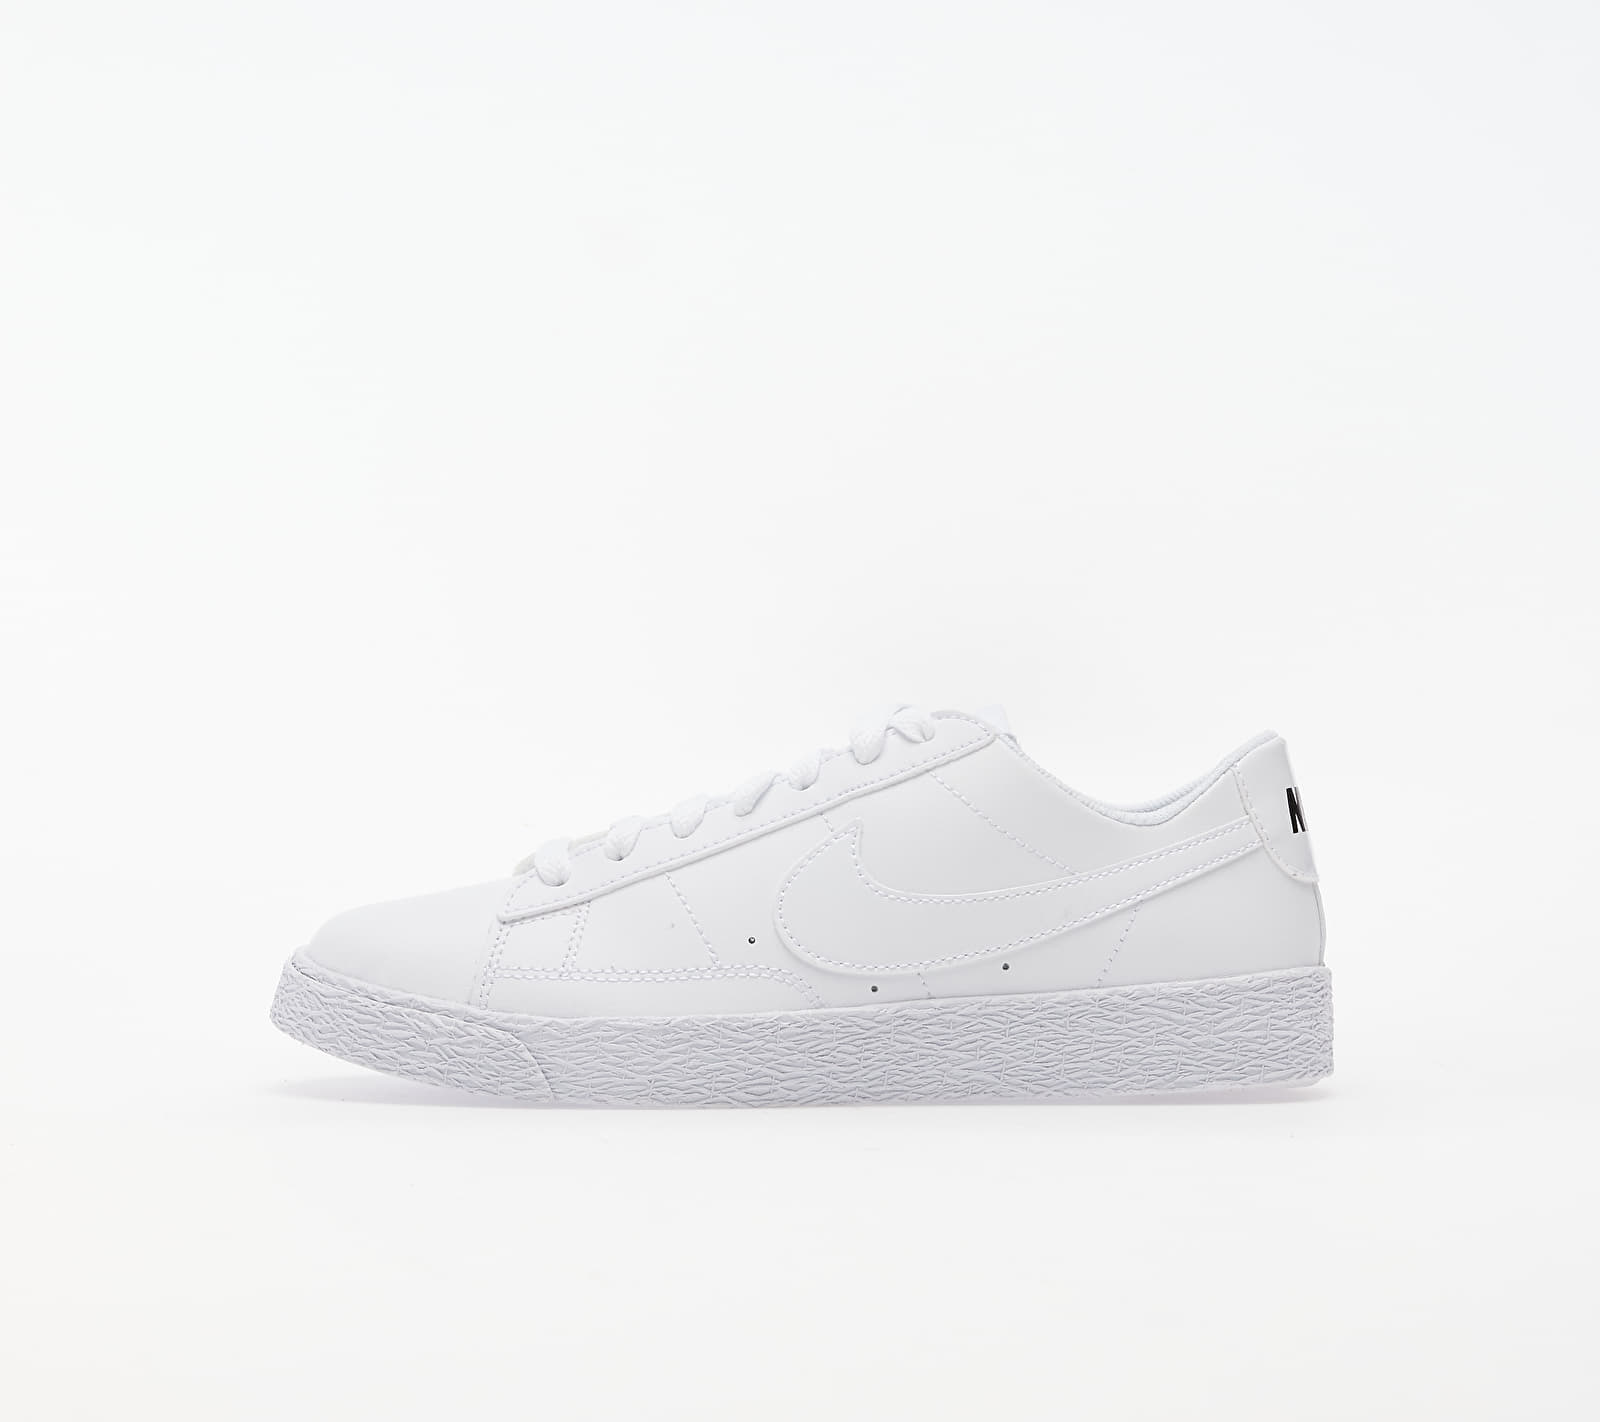 Nike Blazer Low (GS) White/ White-Black EUR 36.5